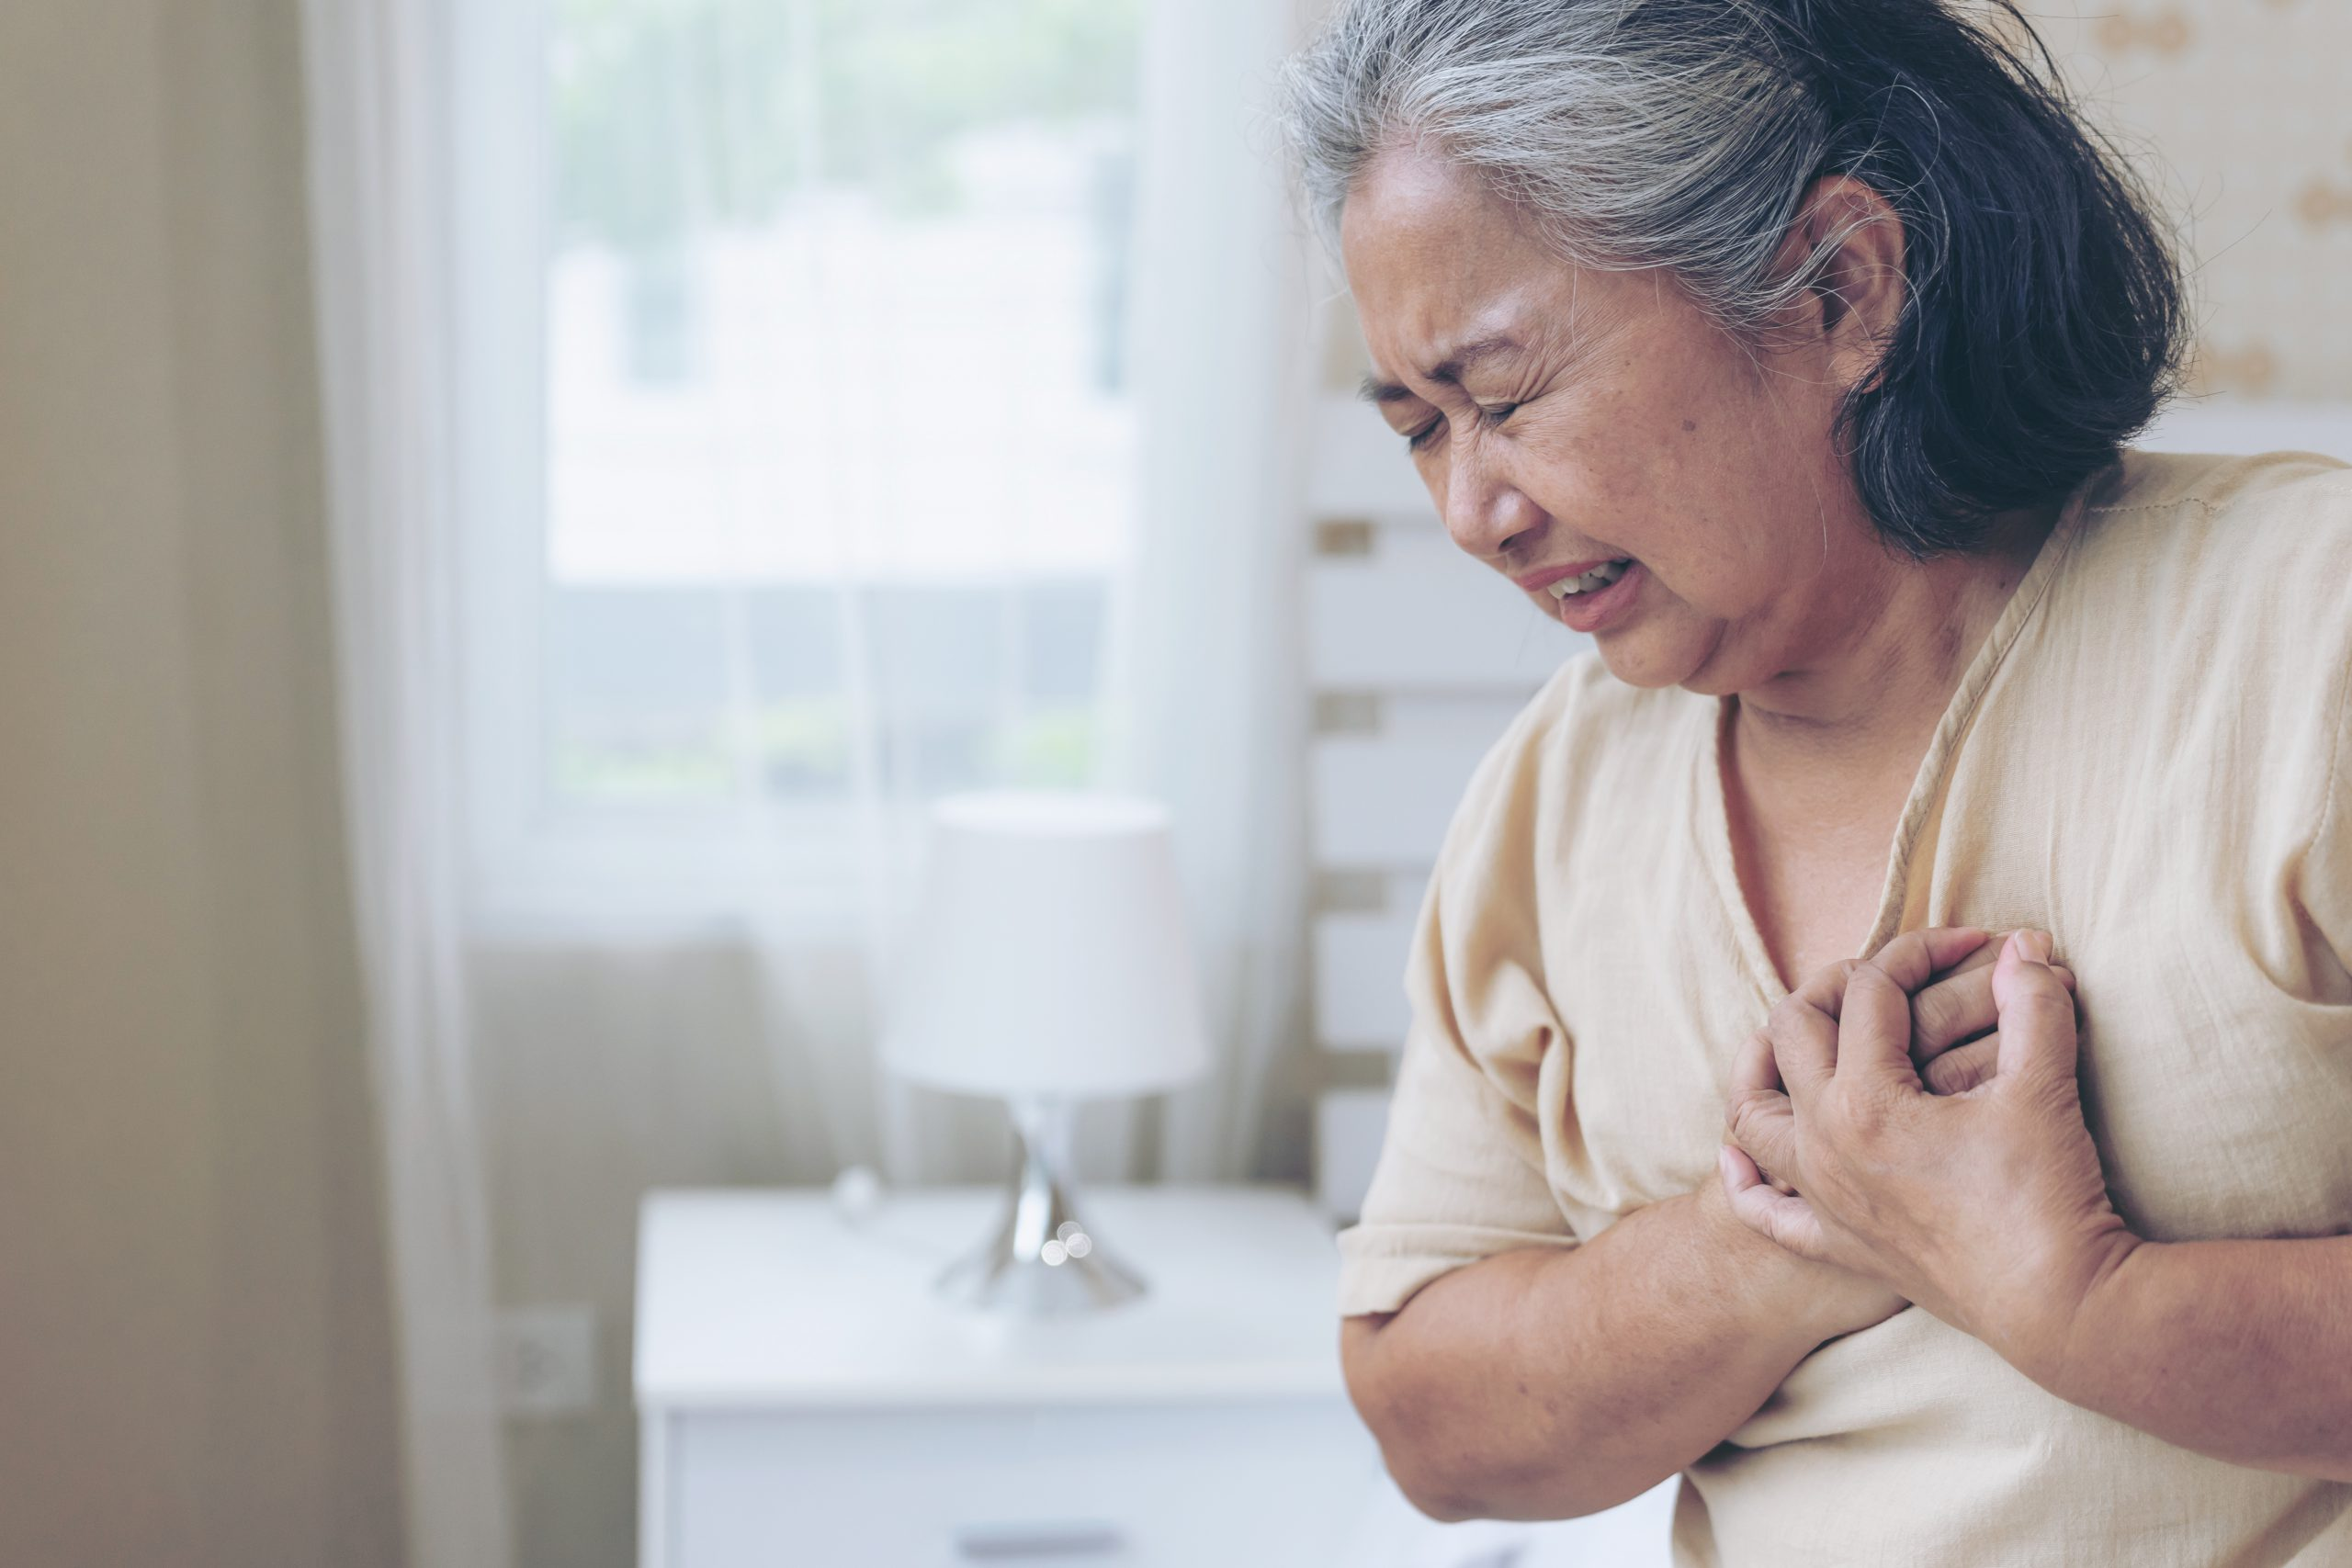 Asian woman clutching her chest from heart disease and CKD